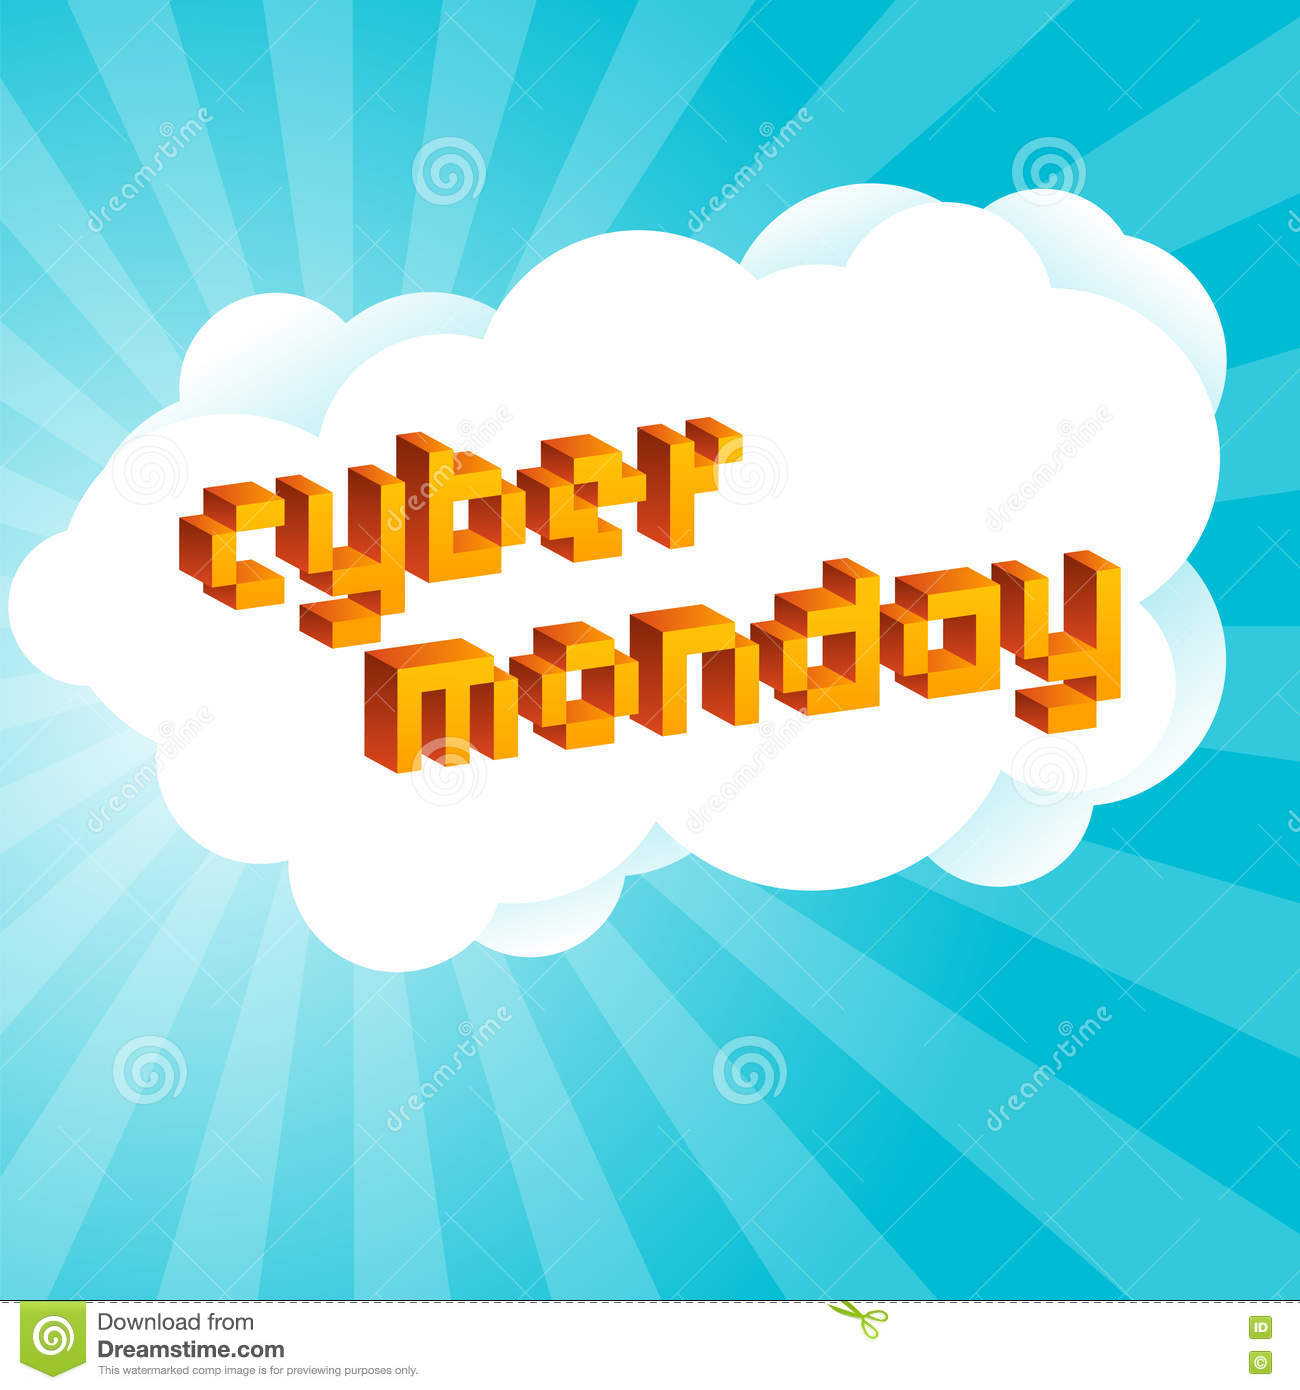 Cyber Monday Background Digital Promo Text In Style Of Old 8 Bit